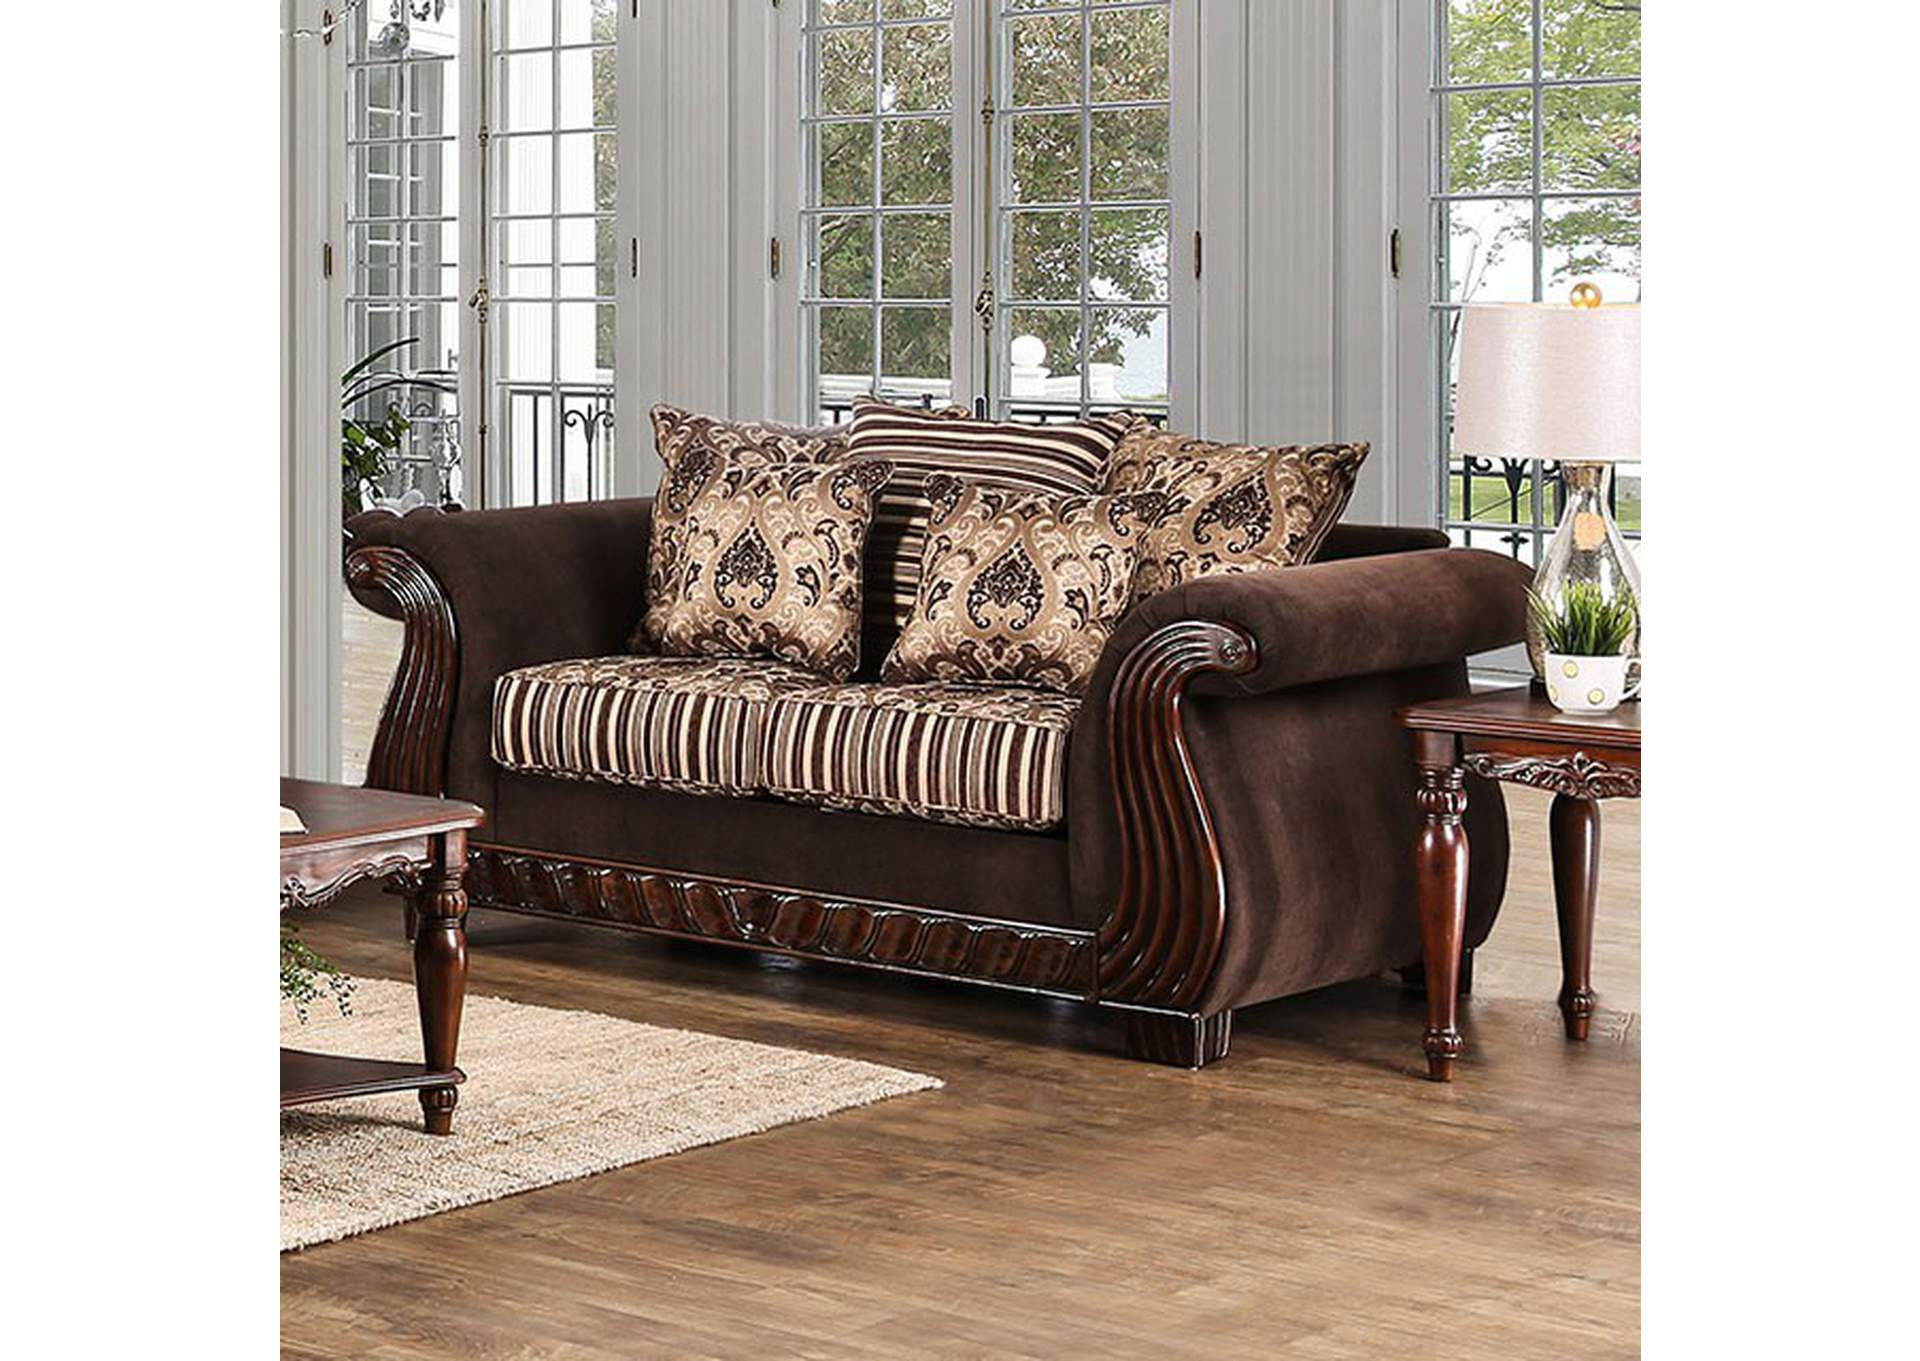 Thales Brown Loveseat,Furniture of America